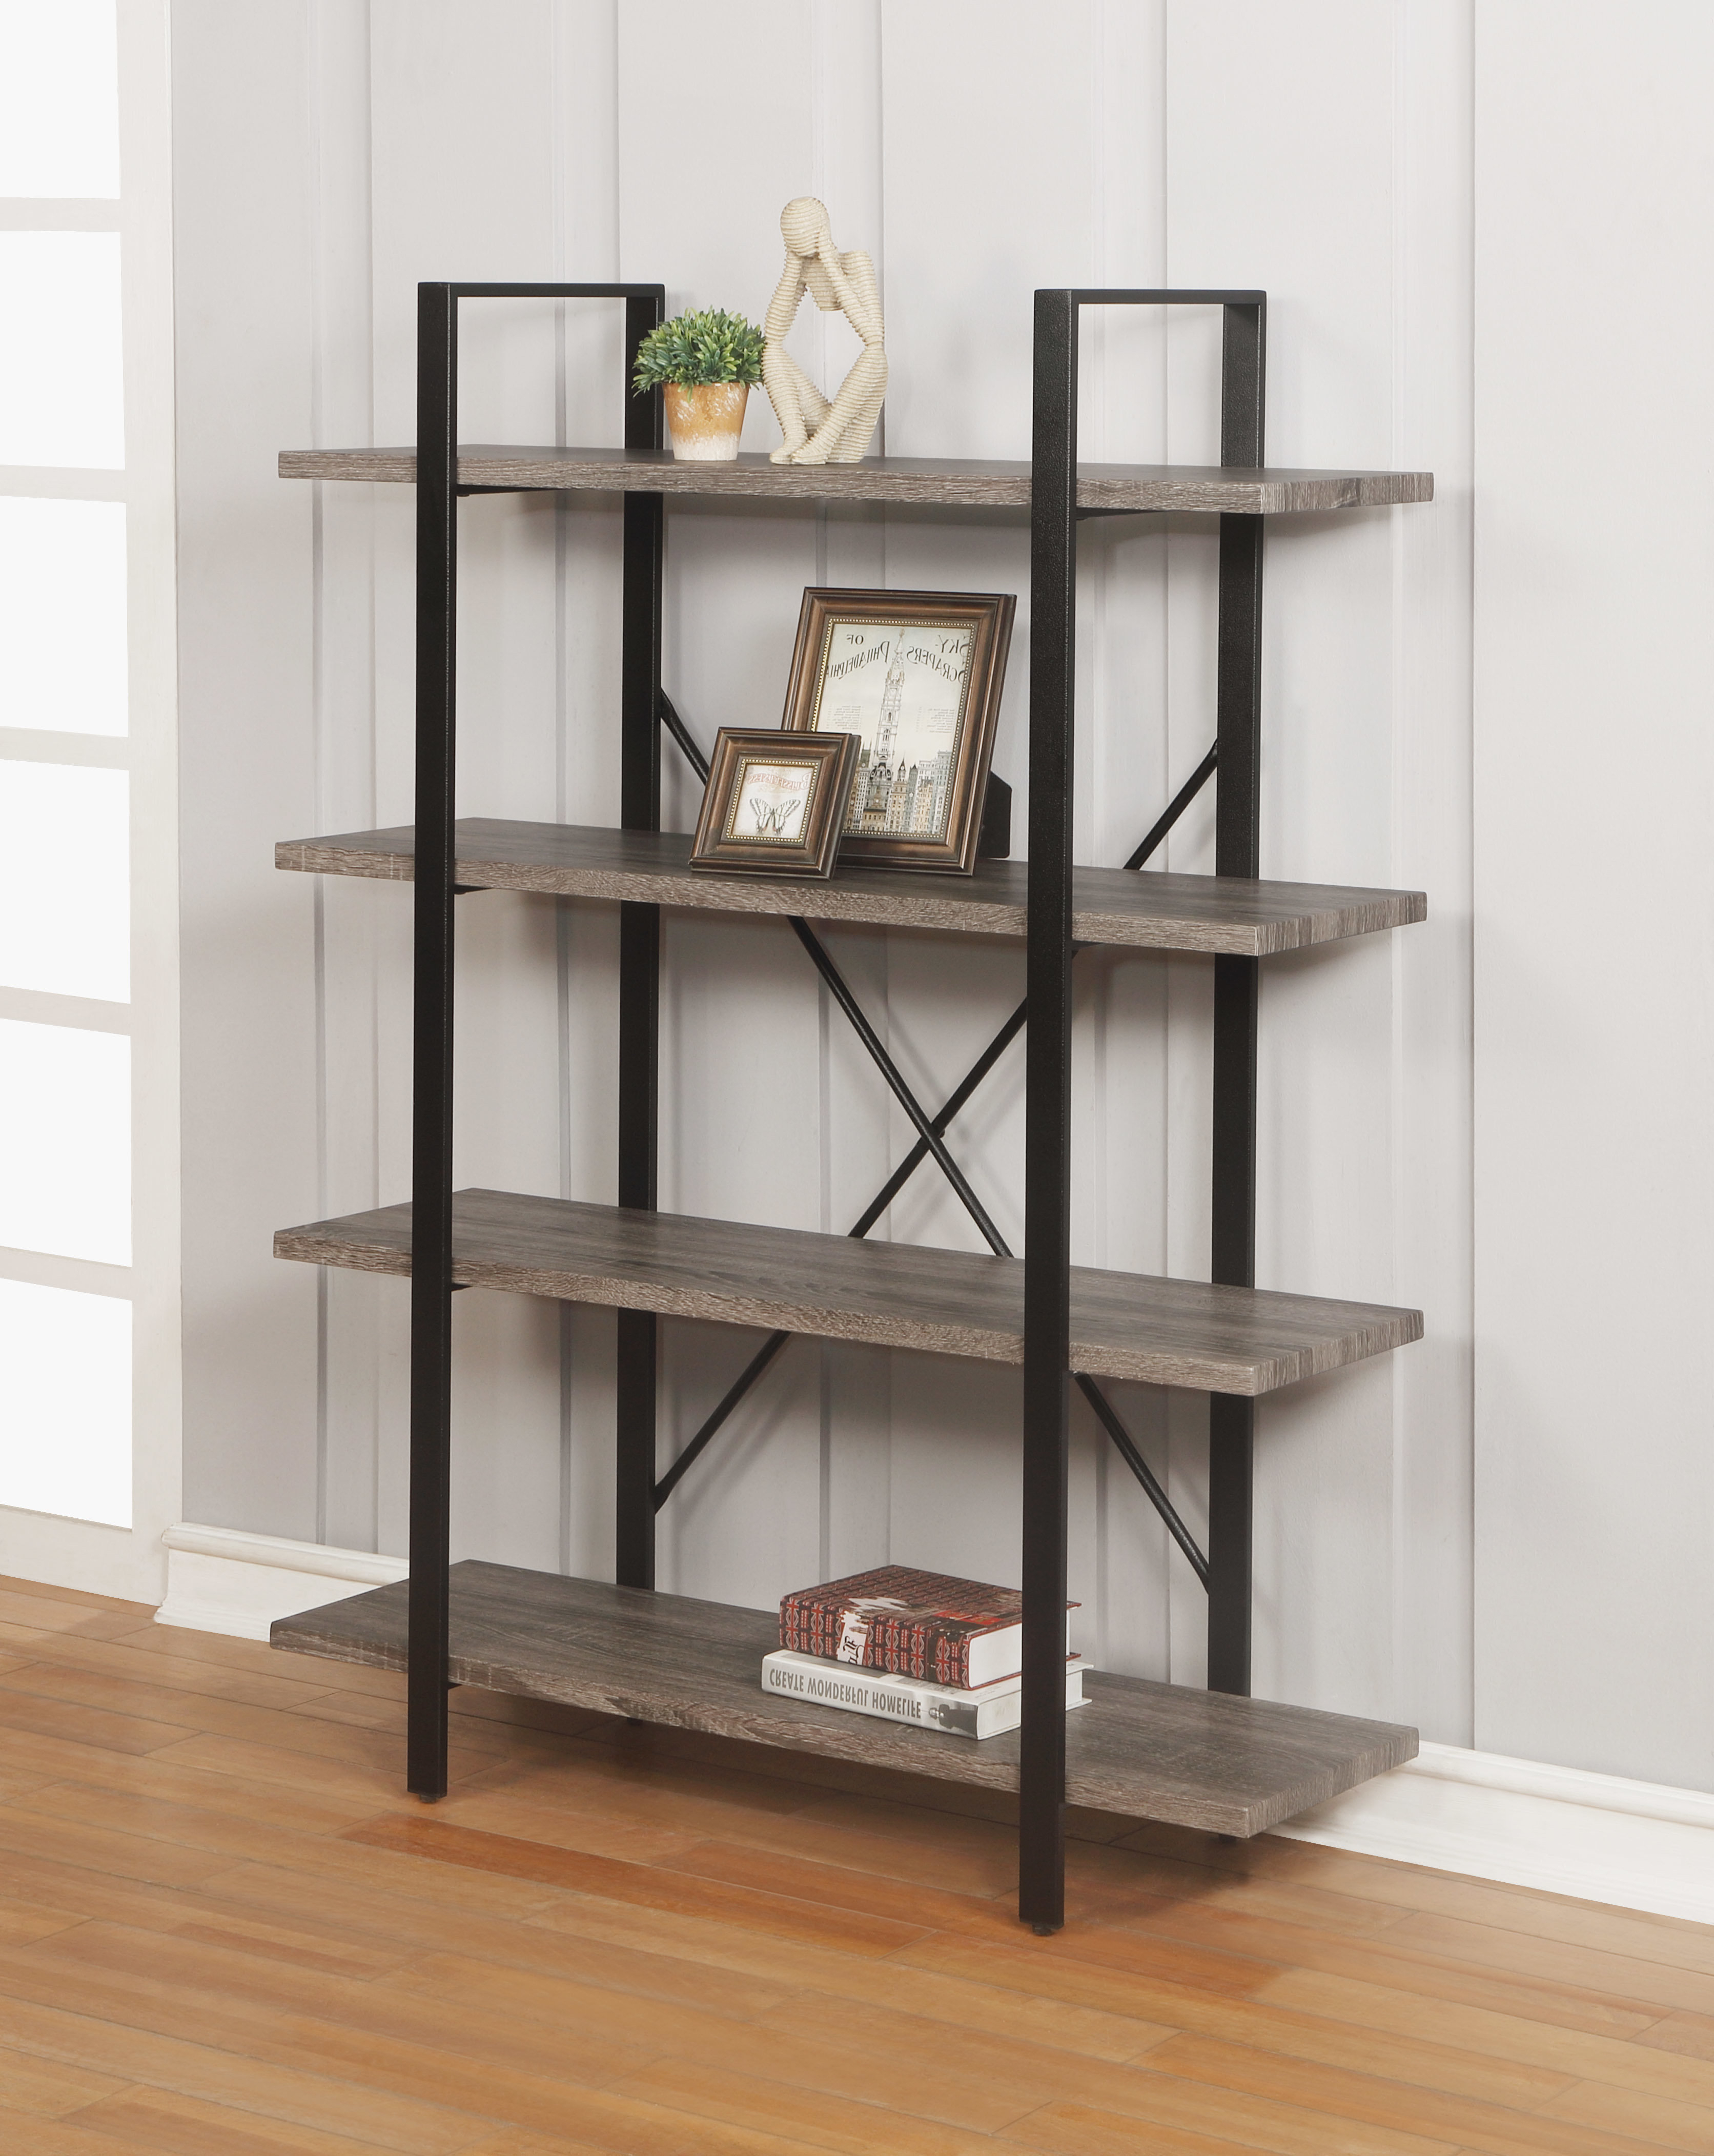 Rech 4 Tier Etagere Bookcases For Famous Olivieri 4 Tier Etagere Bookcase (View 14 of 20)